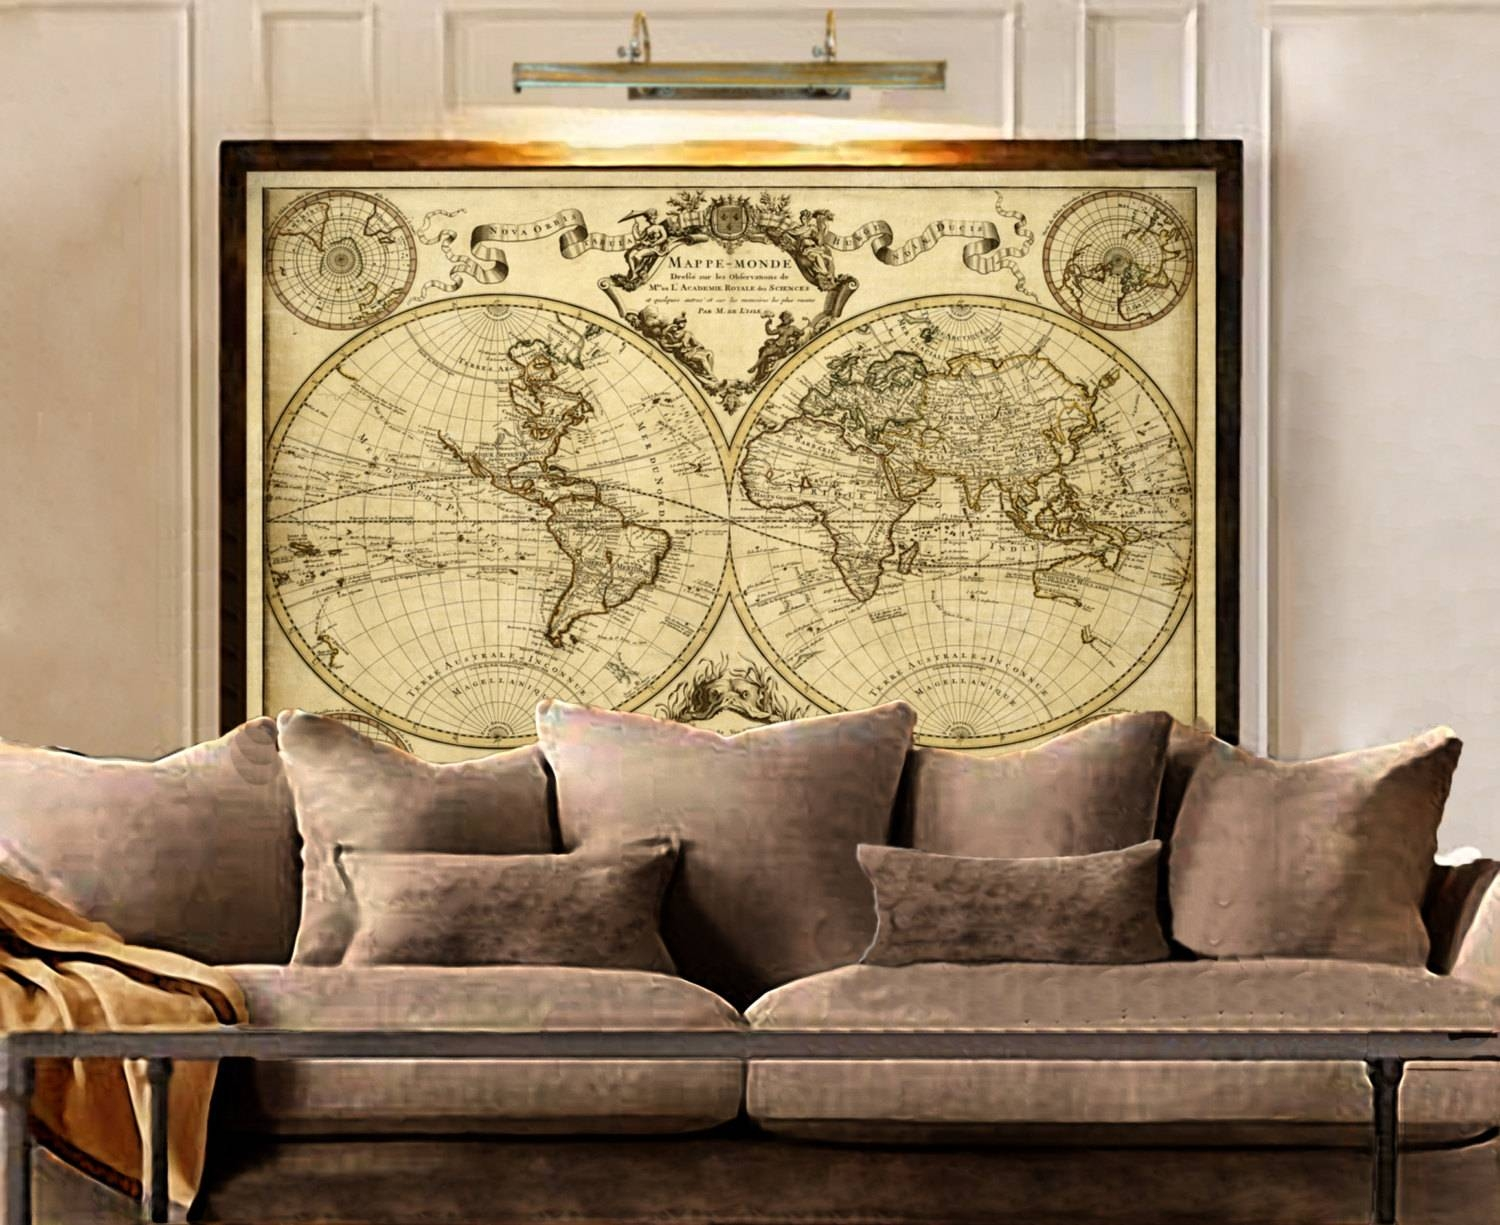 L'isle's 1720 Old World Map Historic Map Antique Style Pertaining To Current Old Map Wall Art (View 4 of 20)